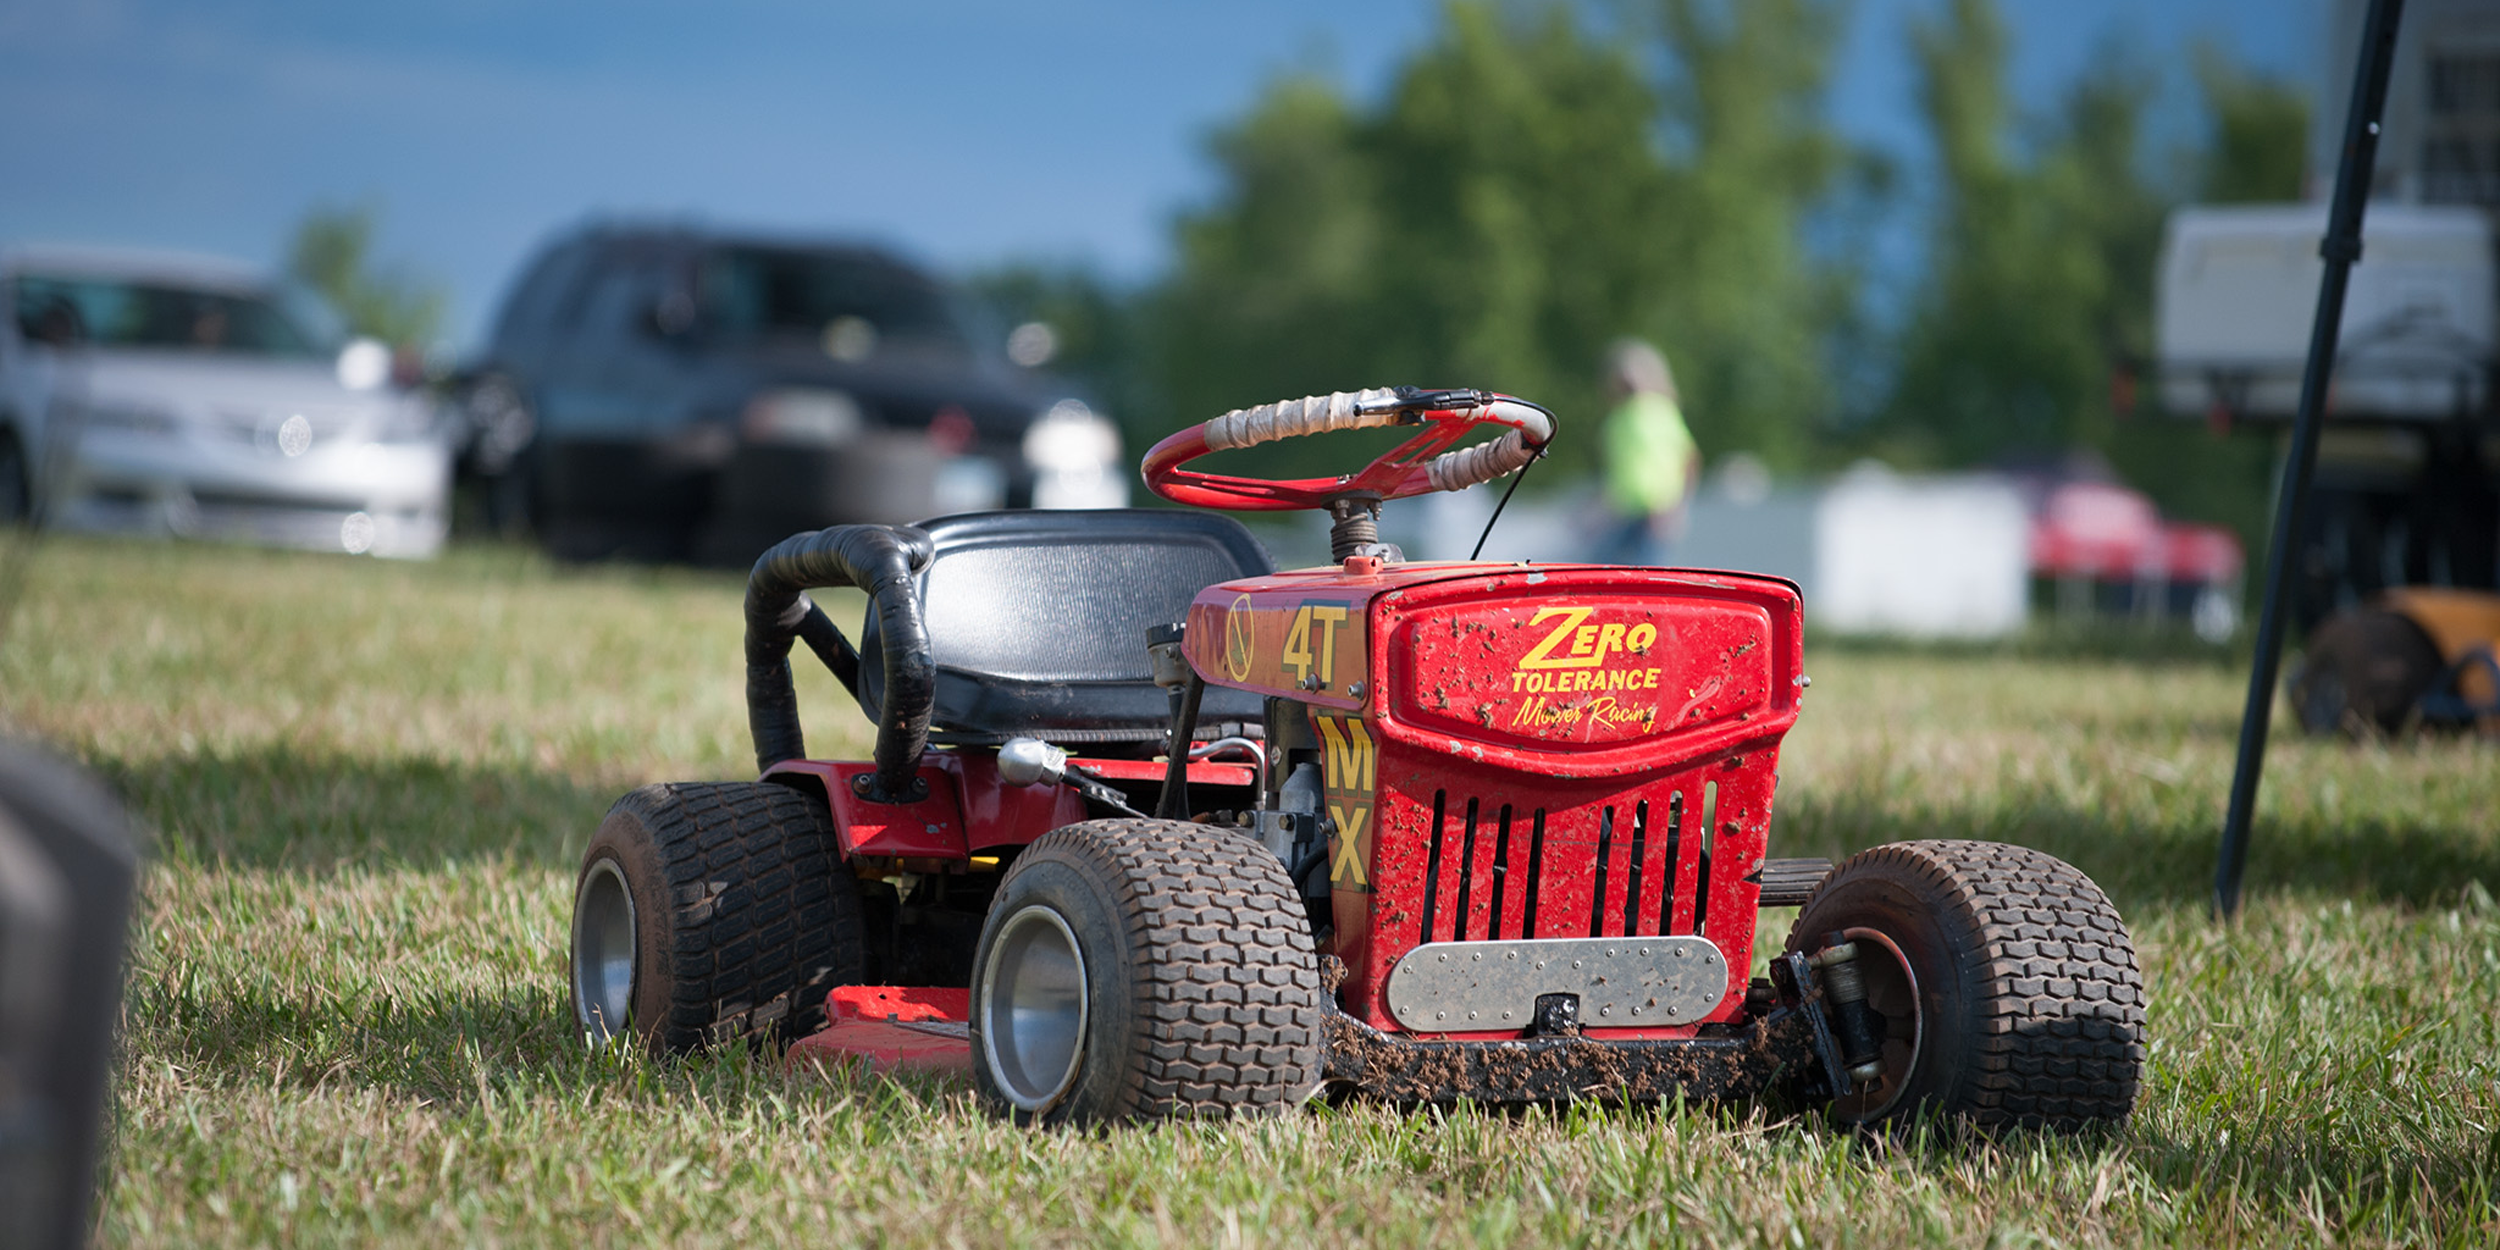 Lawn-Mower-001.png